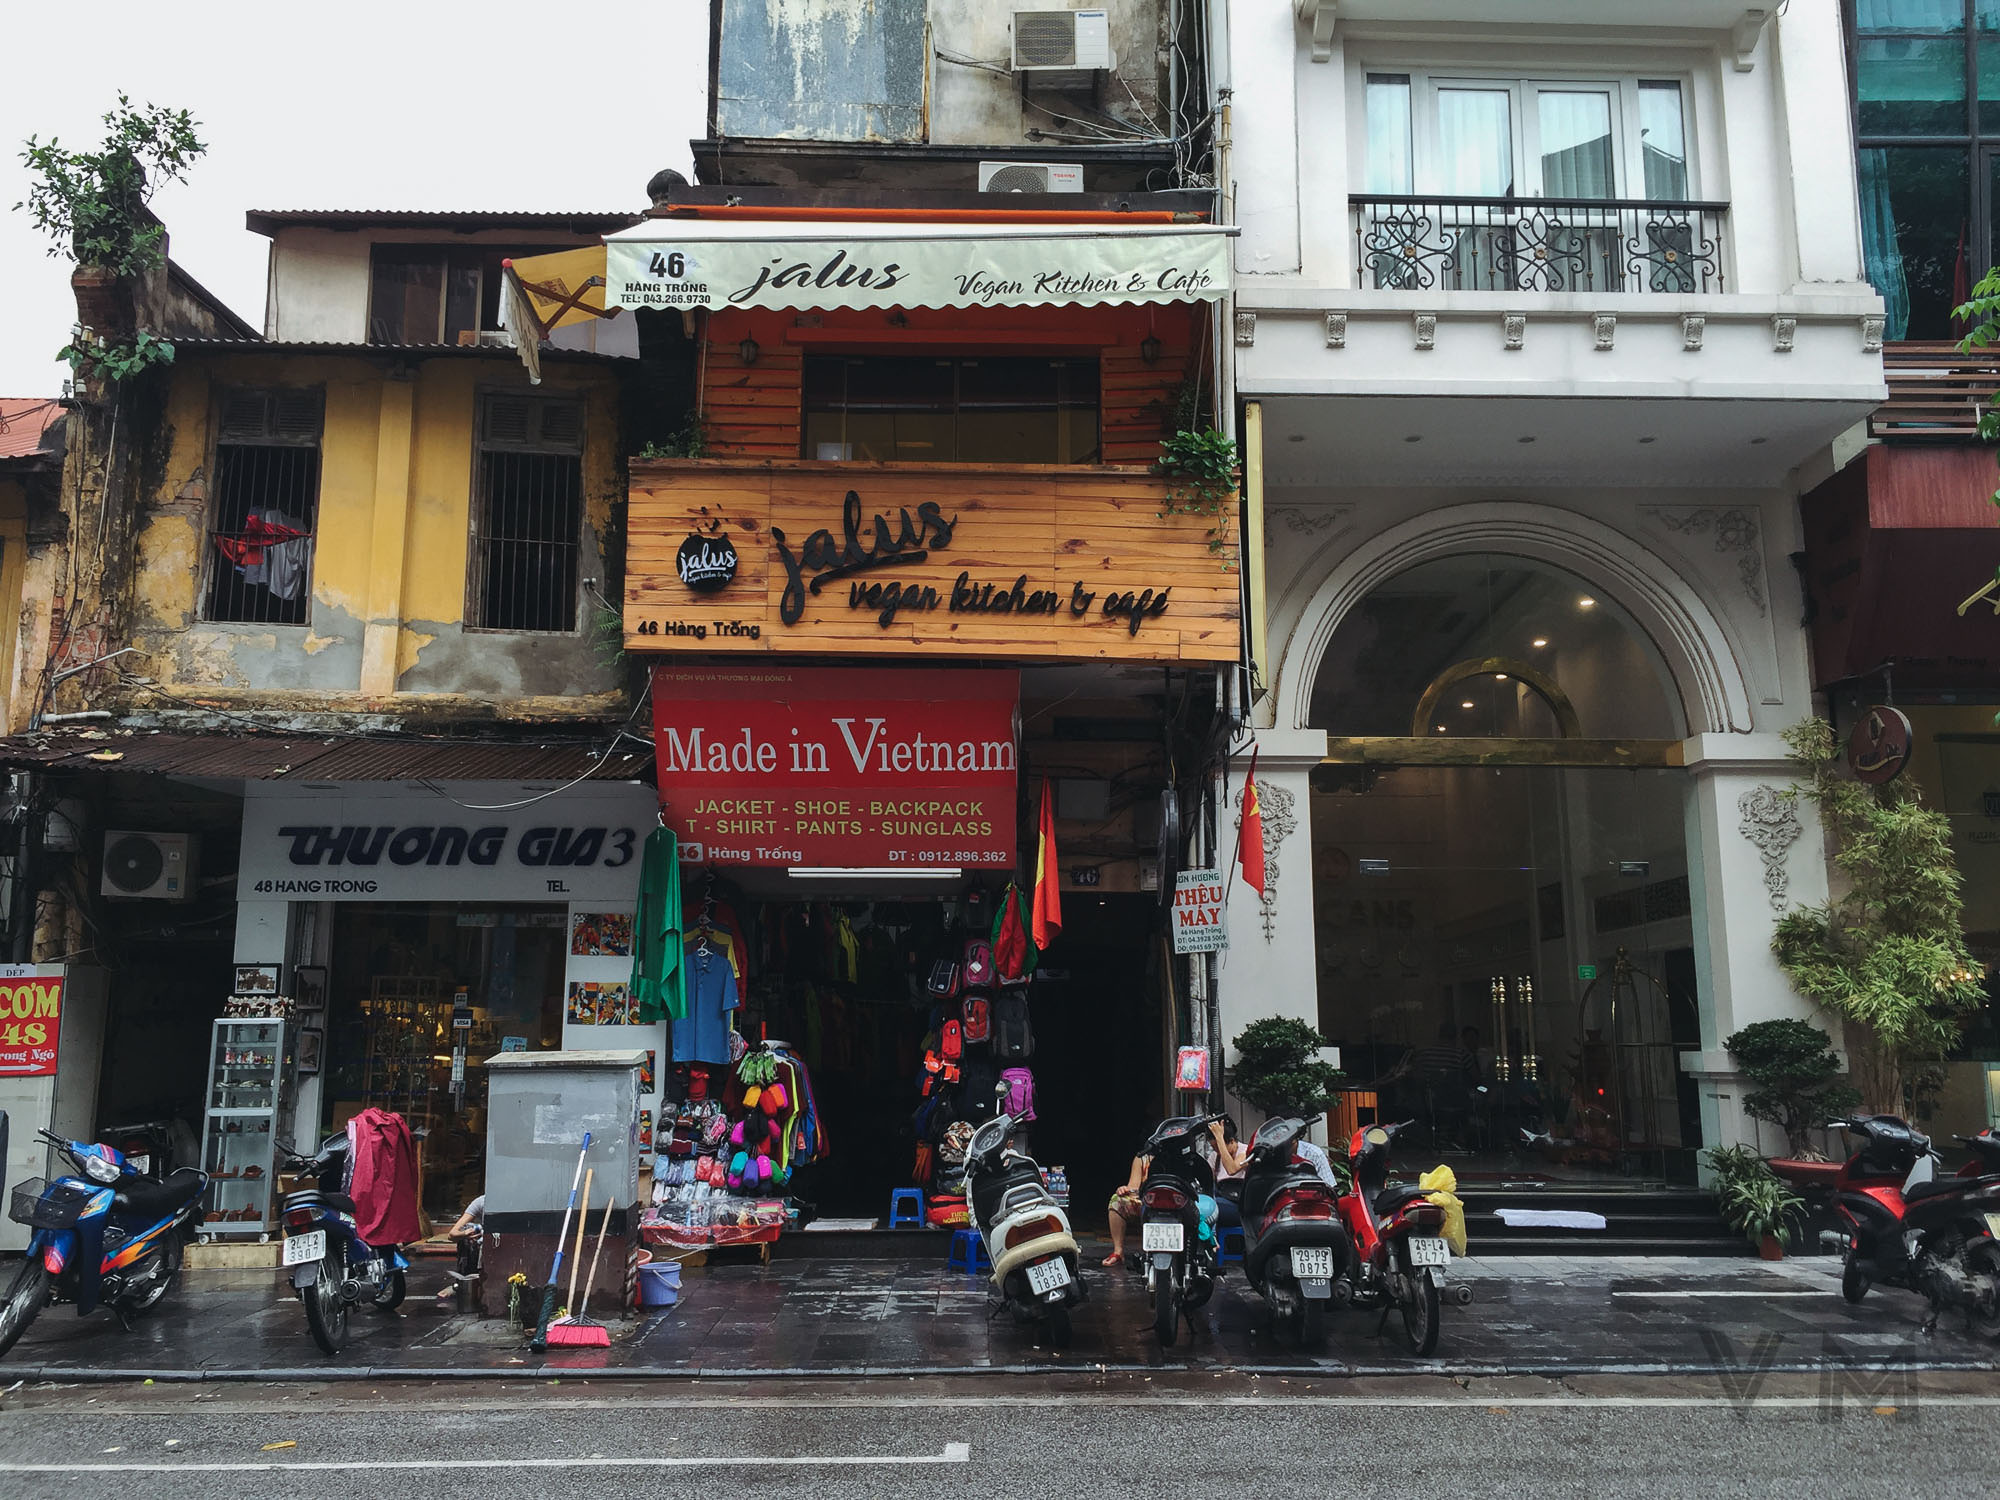 Jalus Vegan Kitchen & Cafe, Hanoi, Vietnam on the street